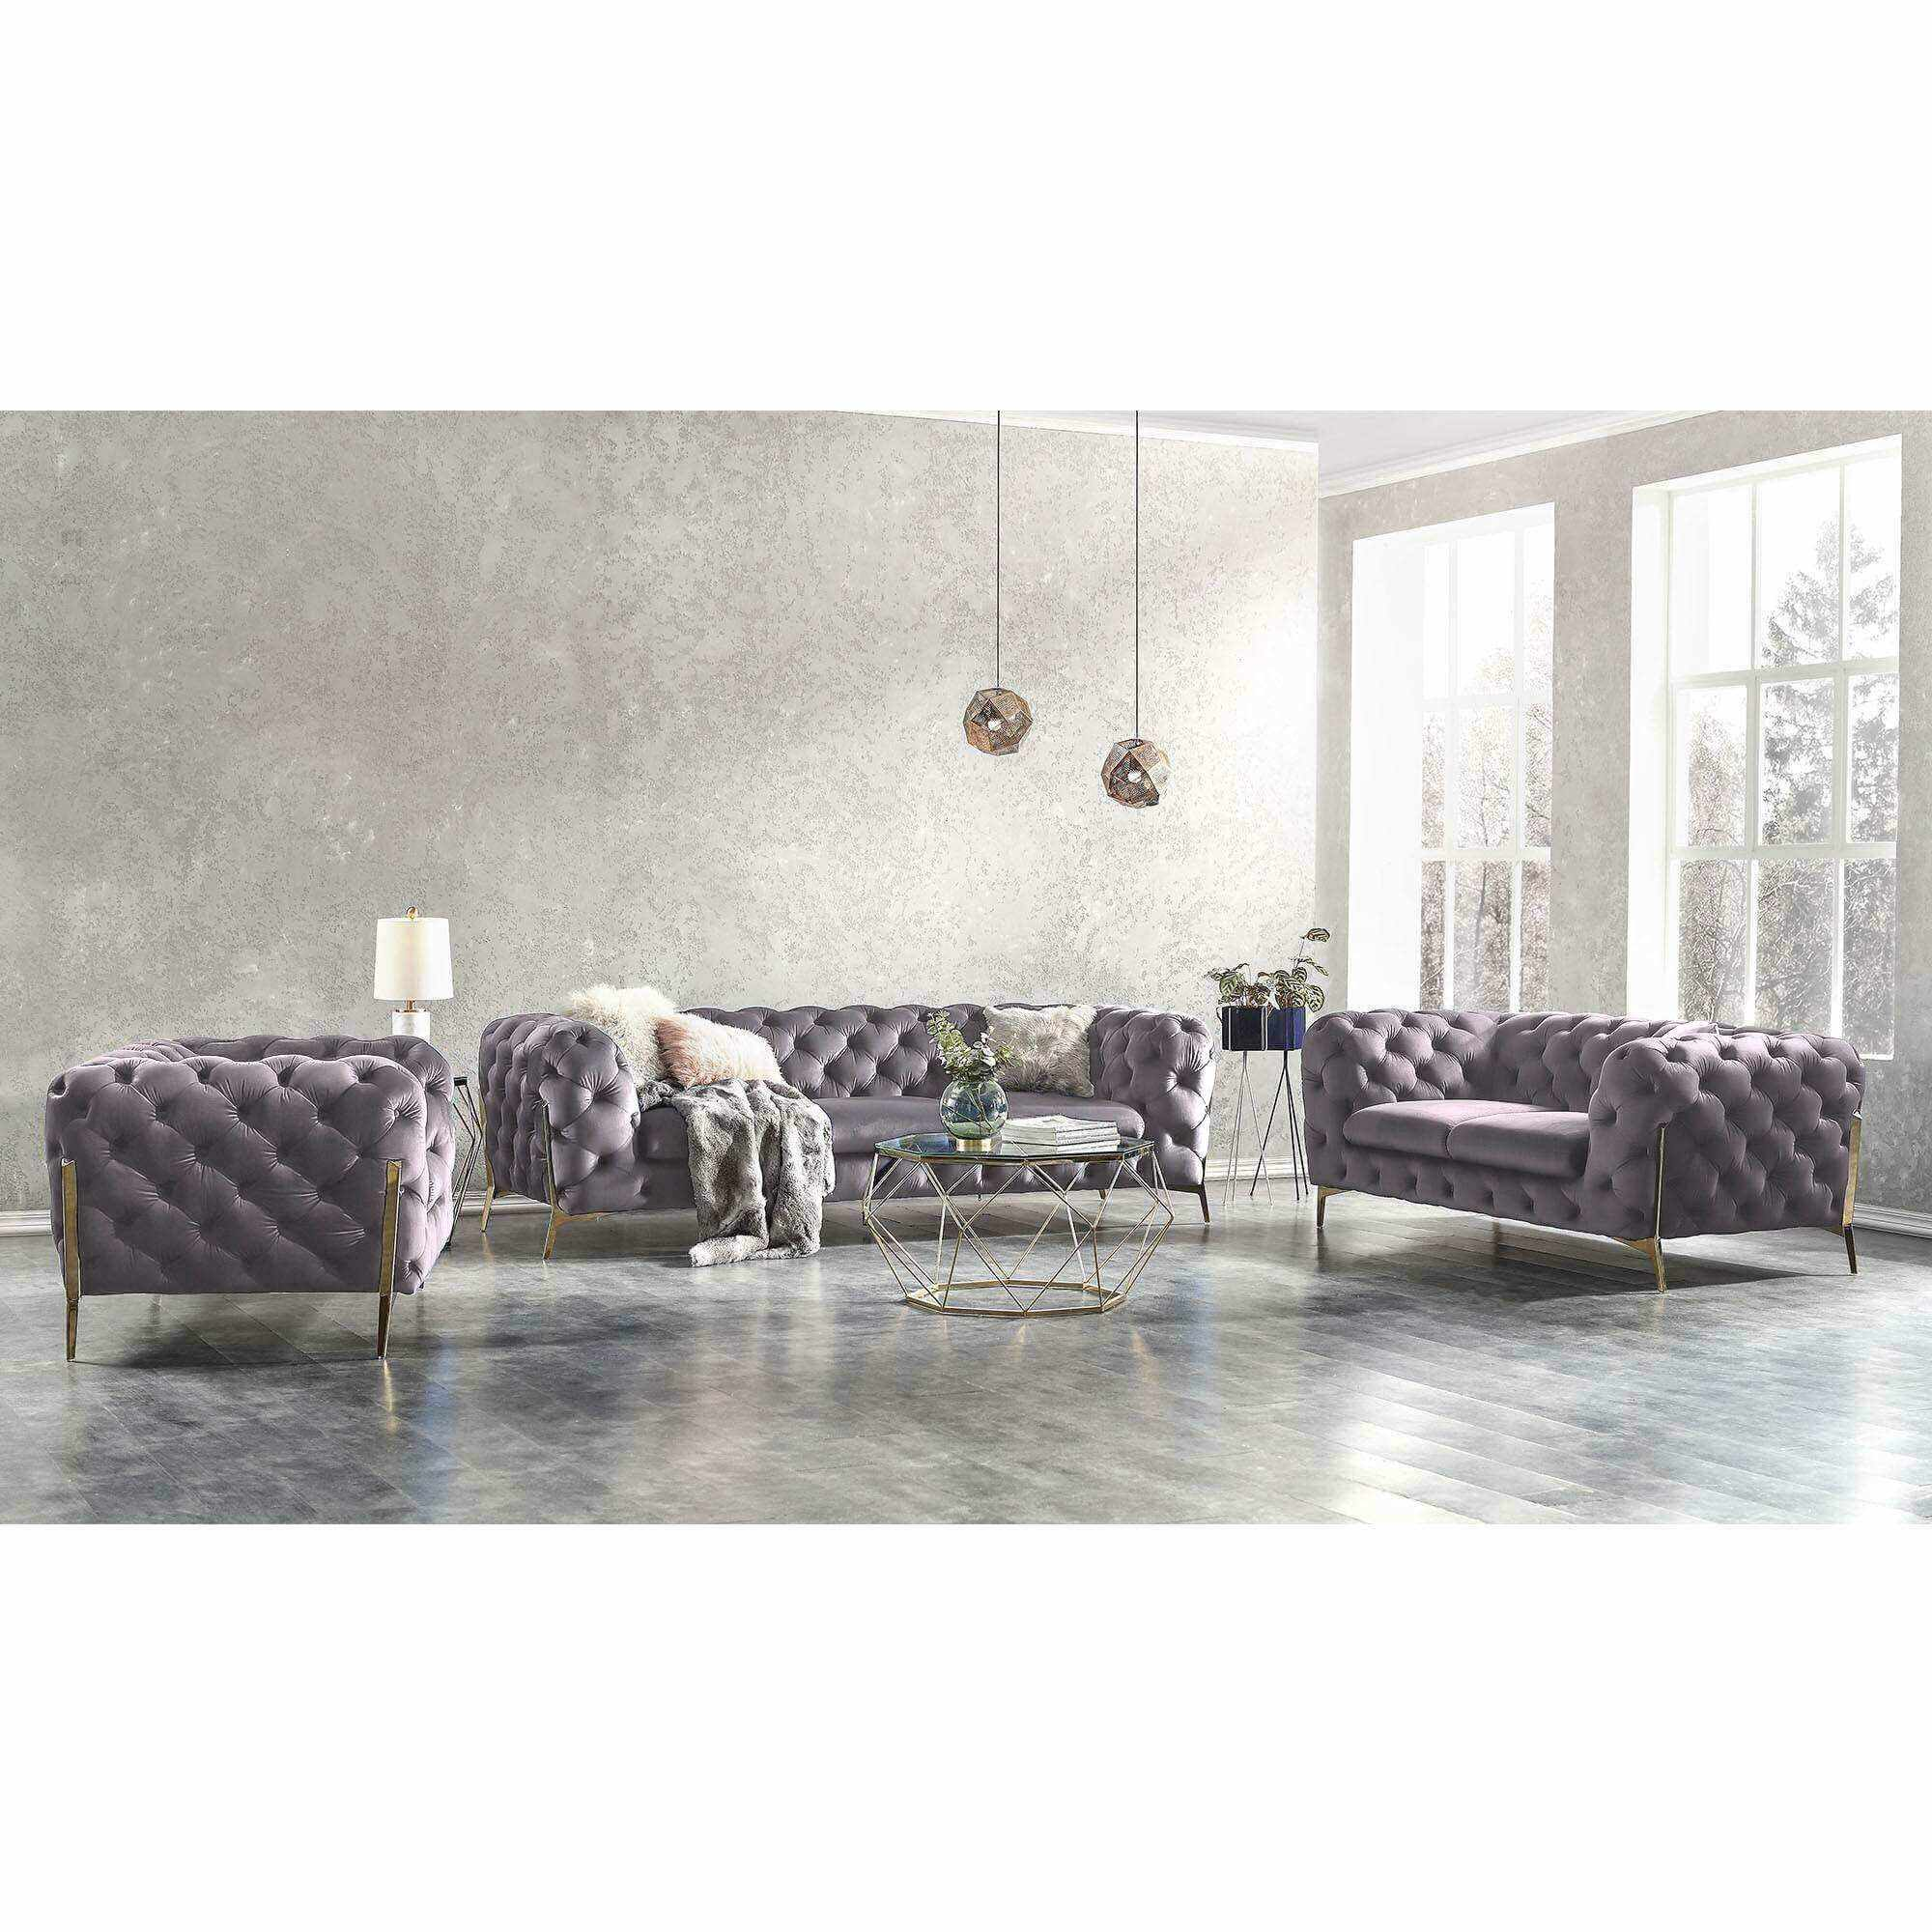 Ensemble canapé 3+2+1 places chesterfield velours gris CARMEN